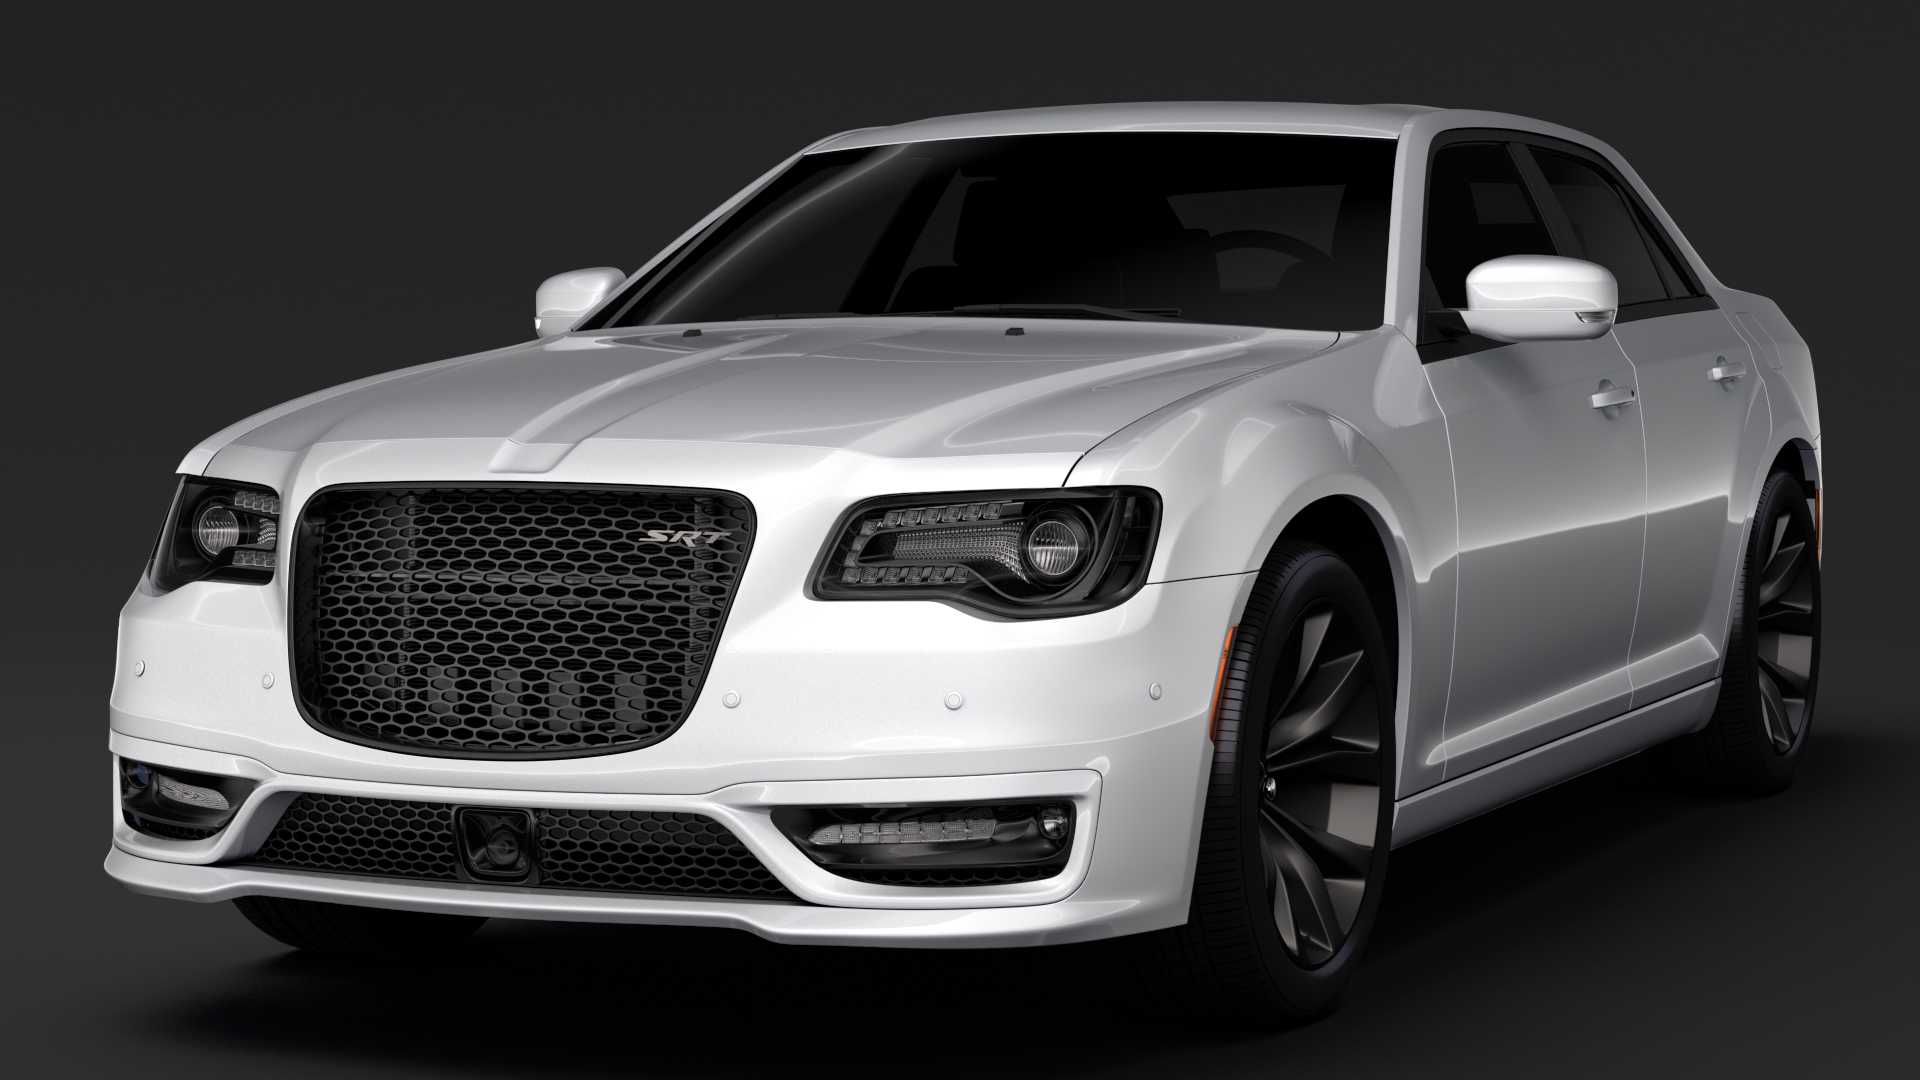 chrysler 300 srt lx2 2018 3d model 3ds max fbx c4d lwo ma mb hrc xsi obj 286091